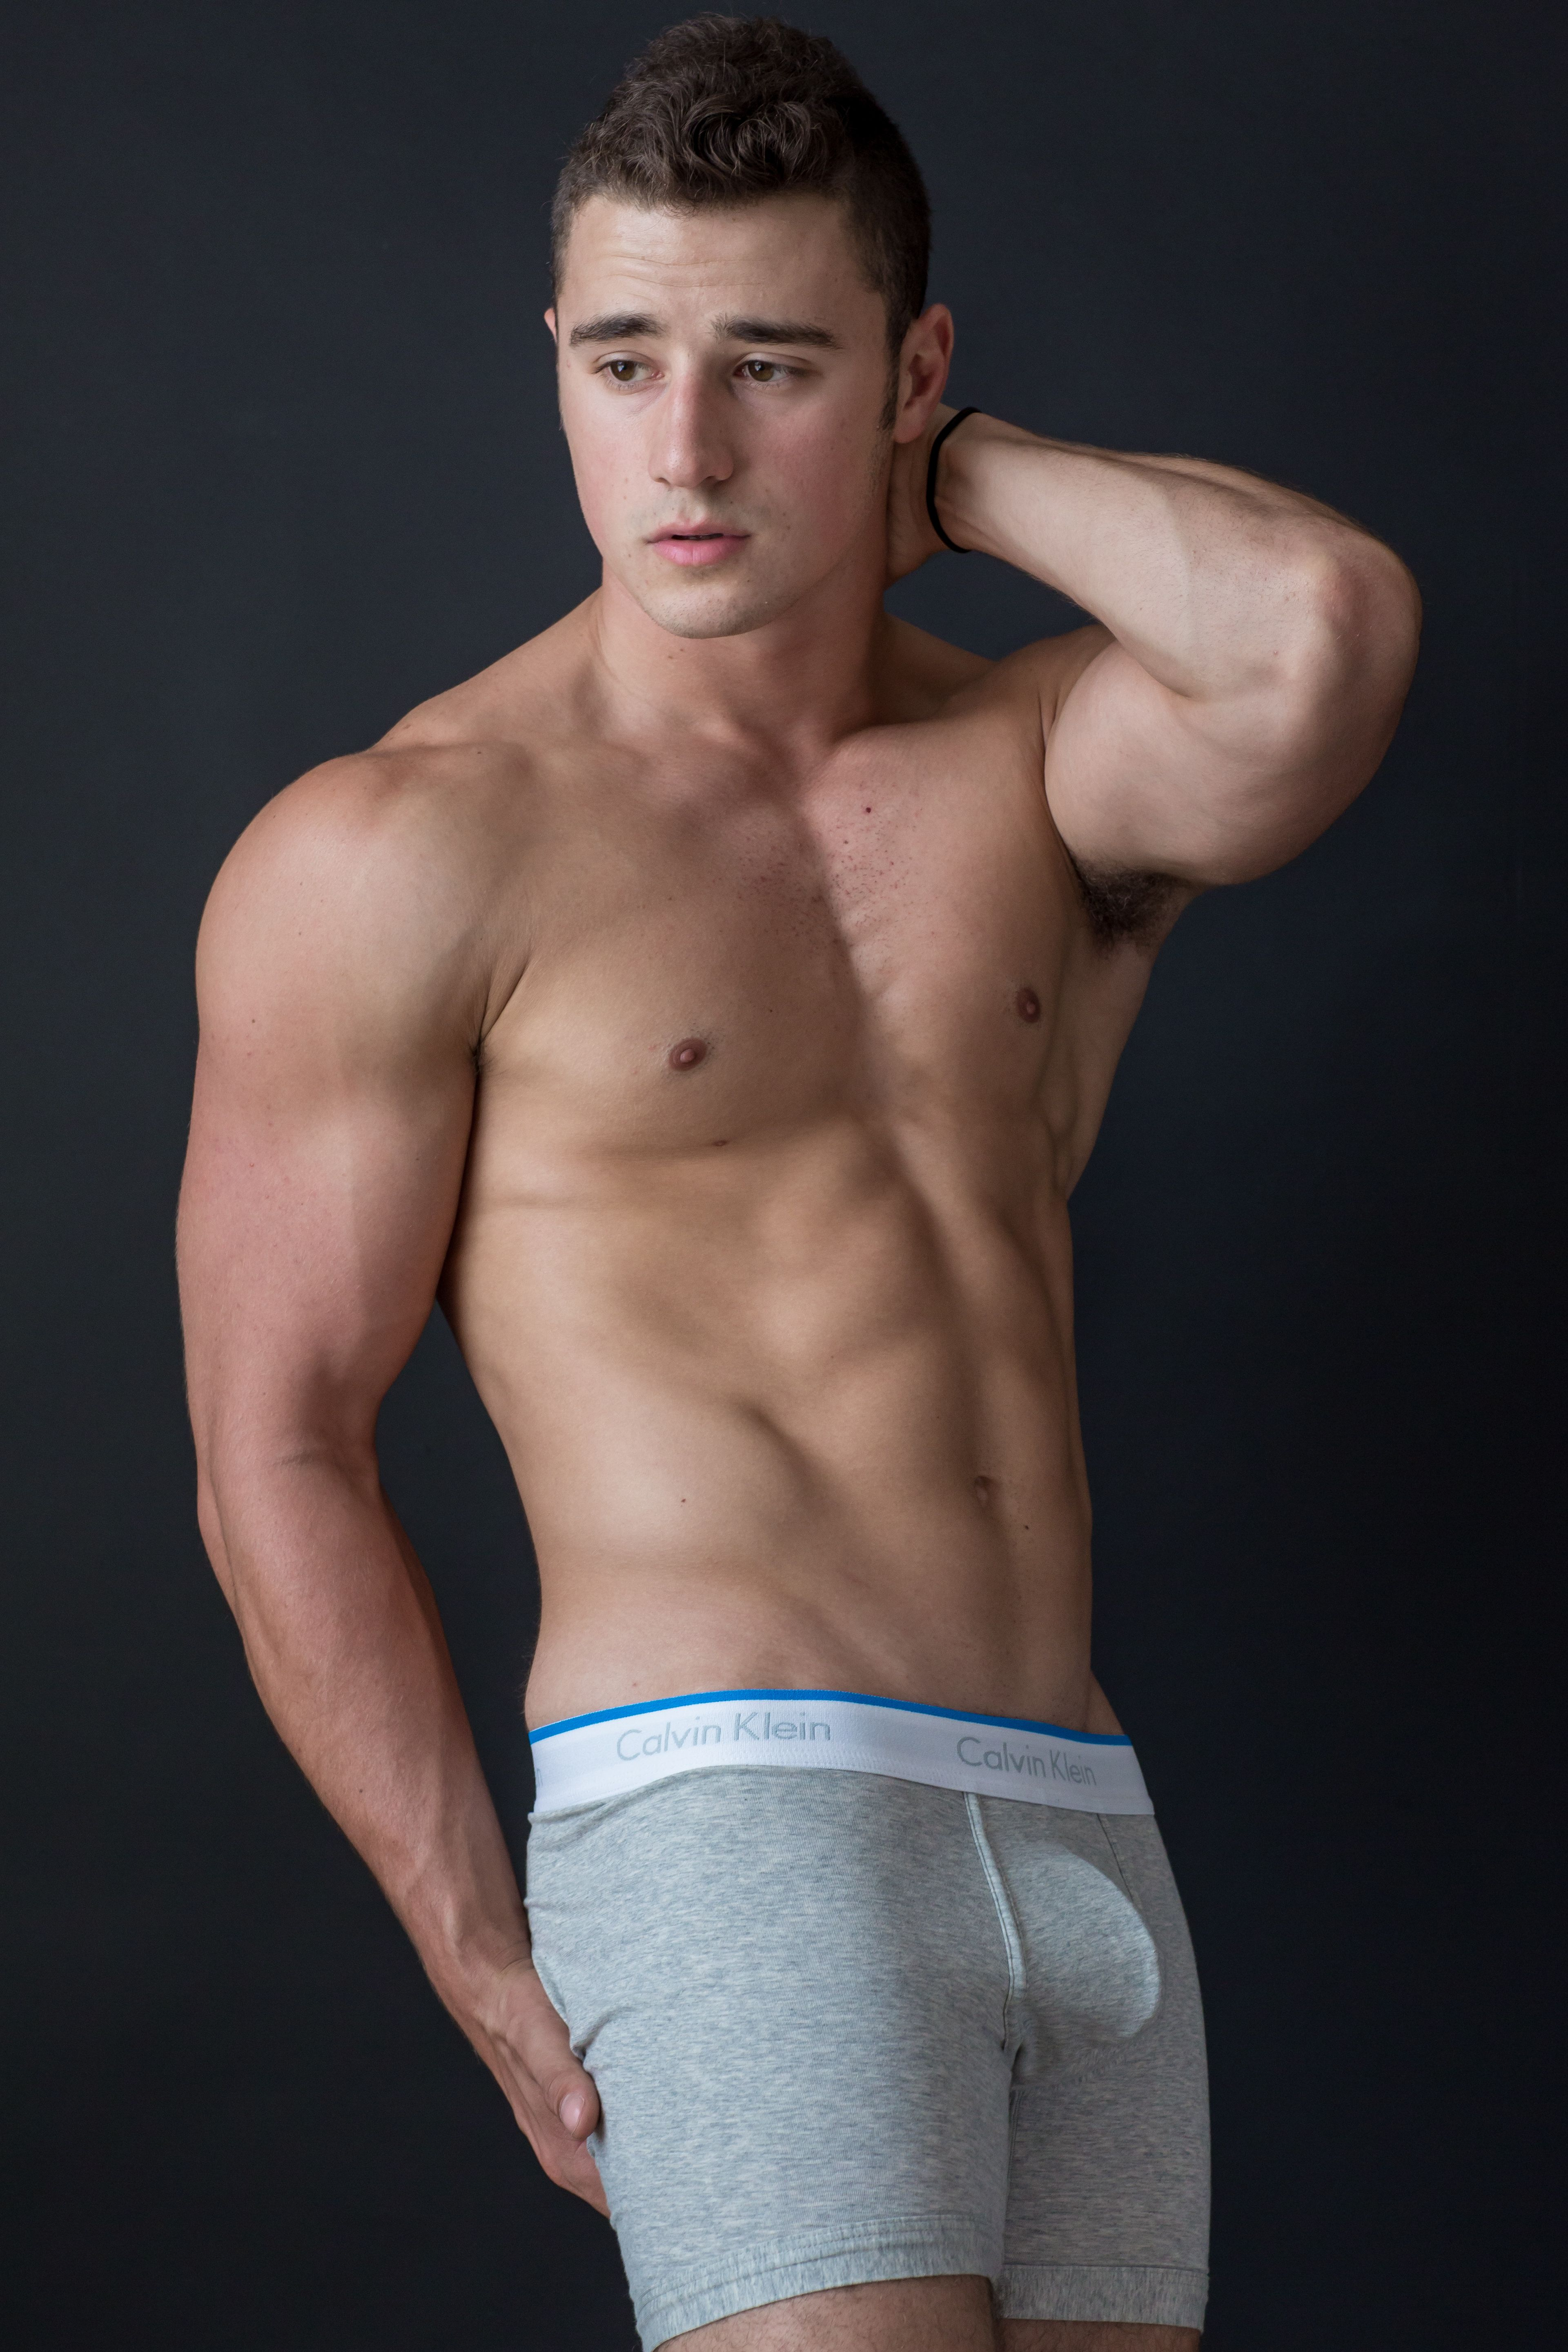 Sexy men cory then embarks to paw and feel 5